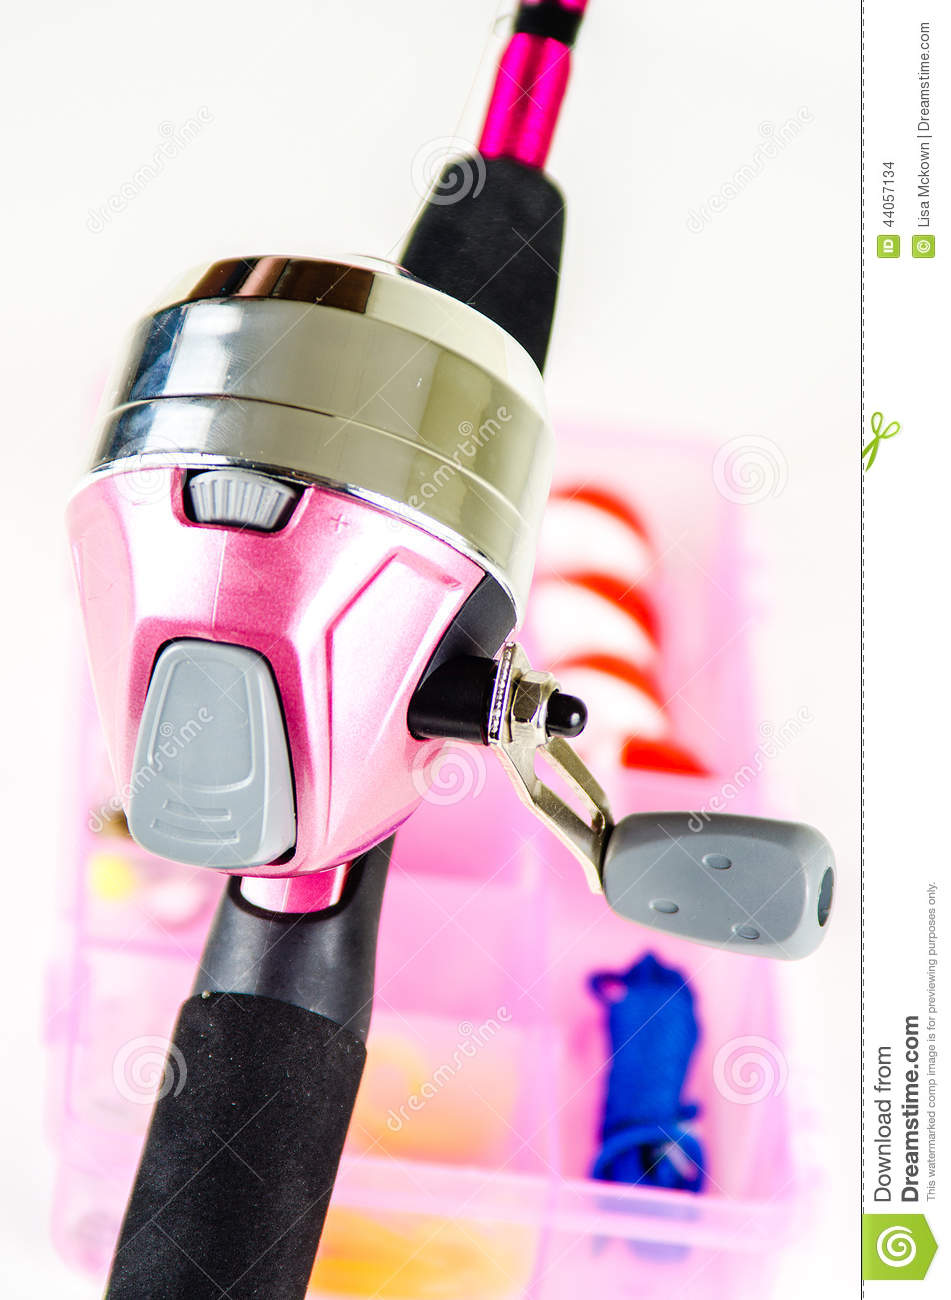 Fishing pole and tackle in pink stock photo image 44057134 for Pink fishing gear